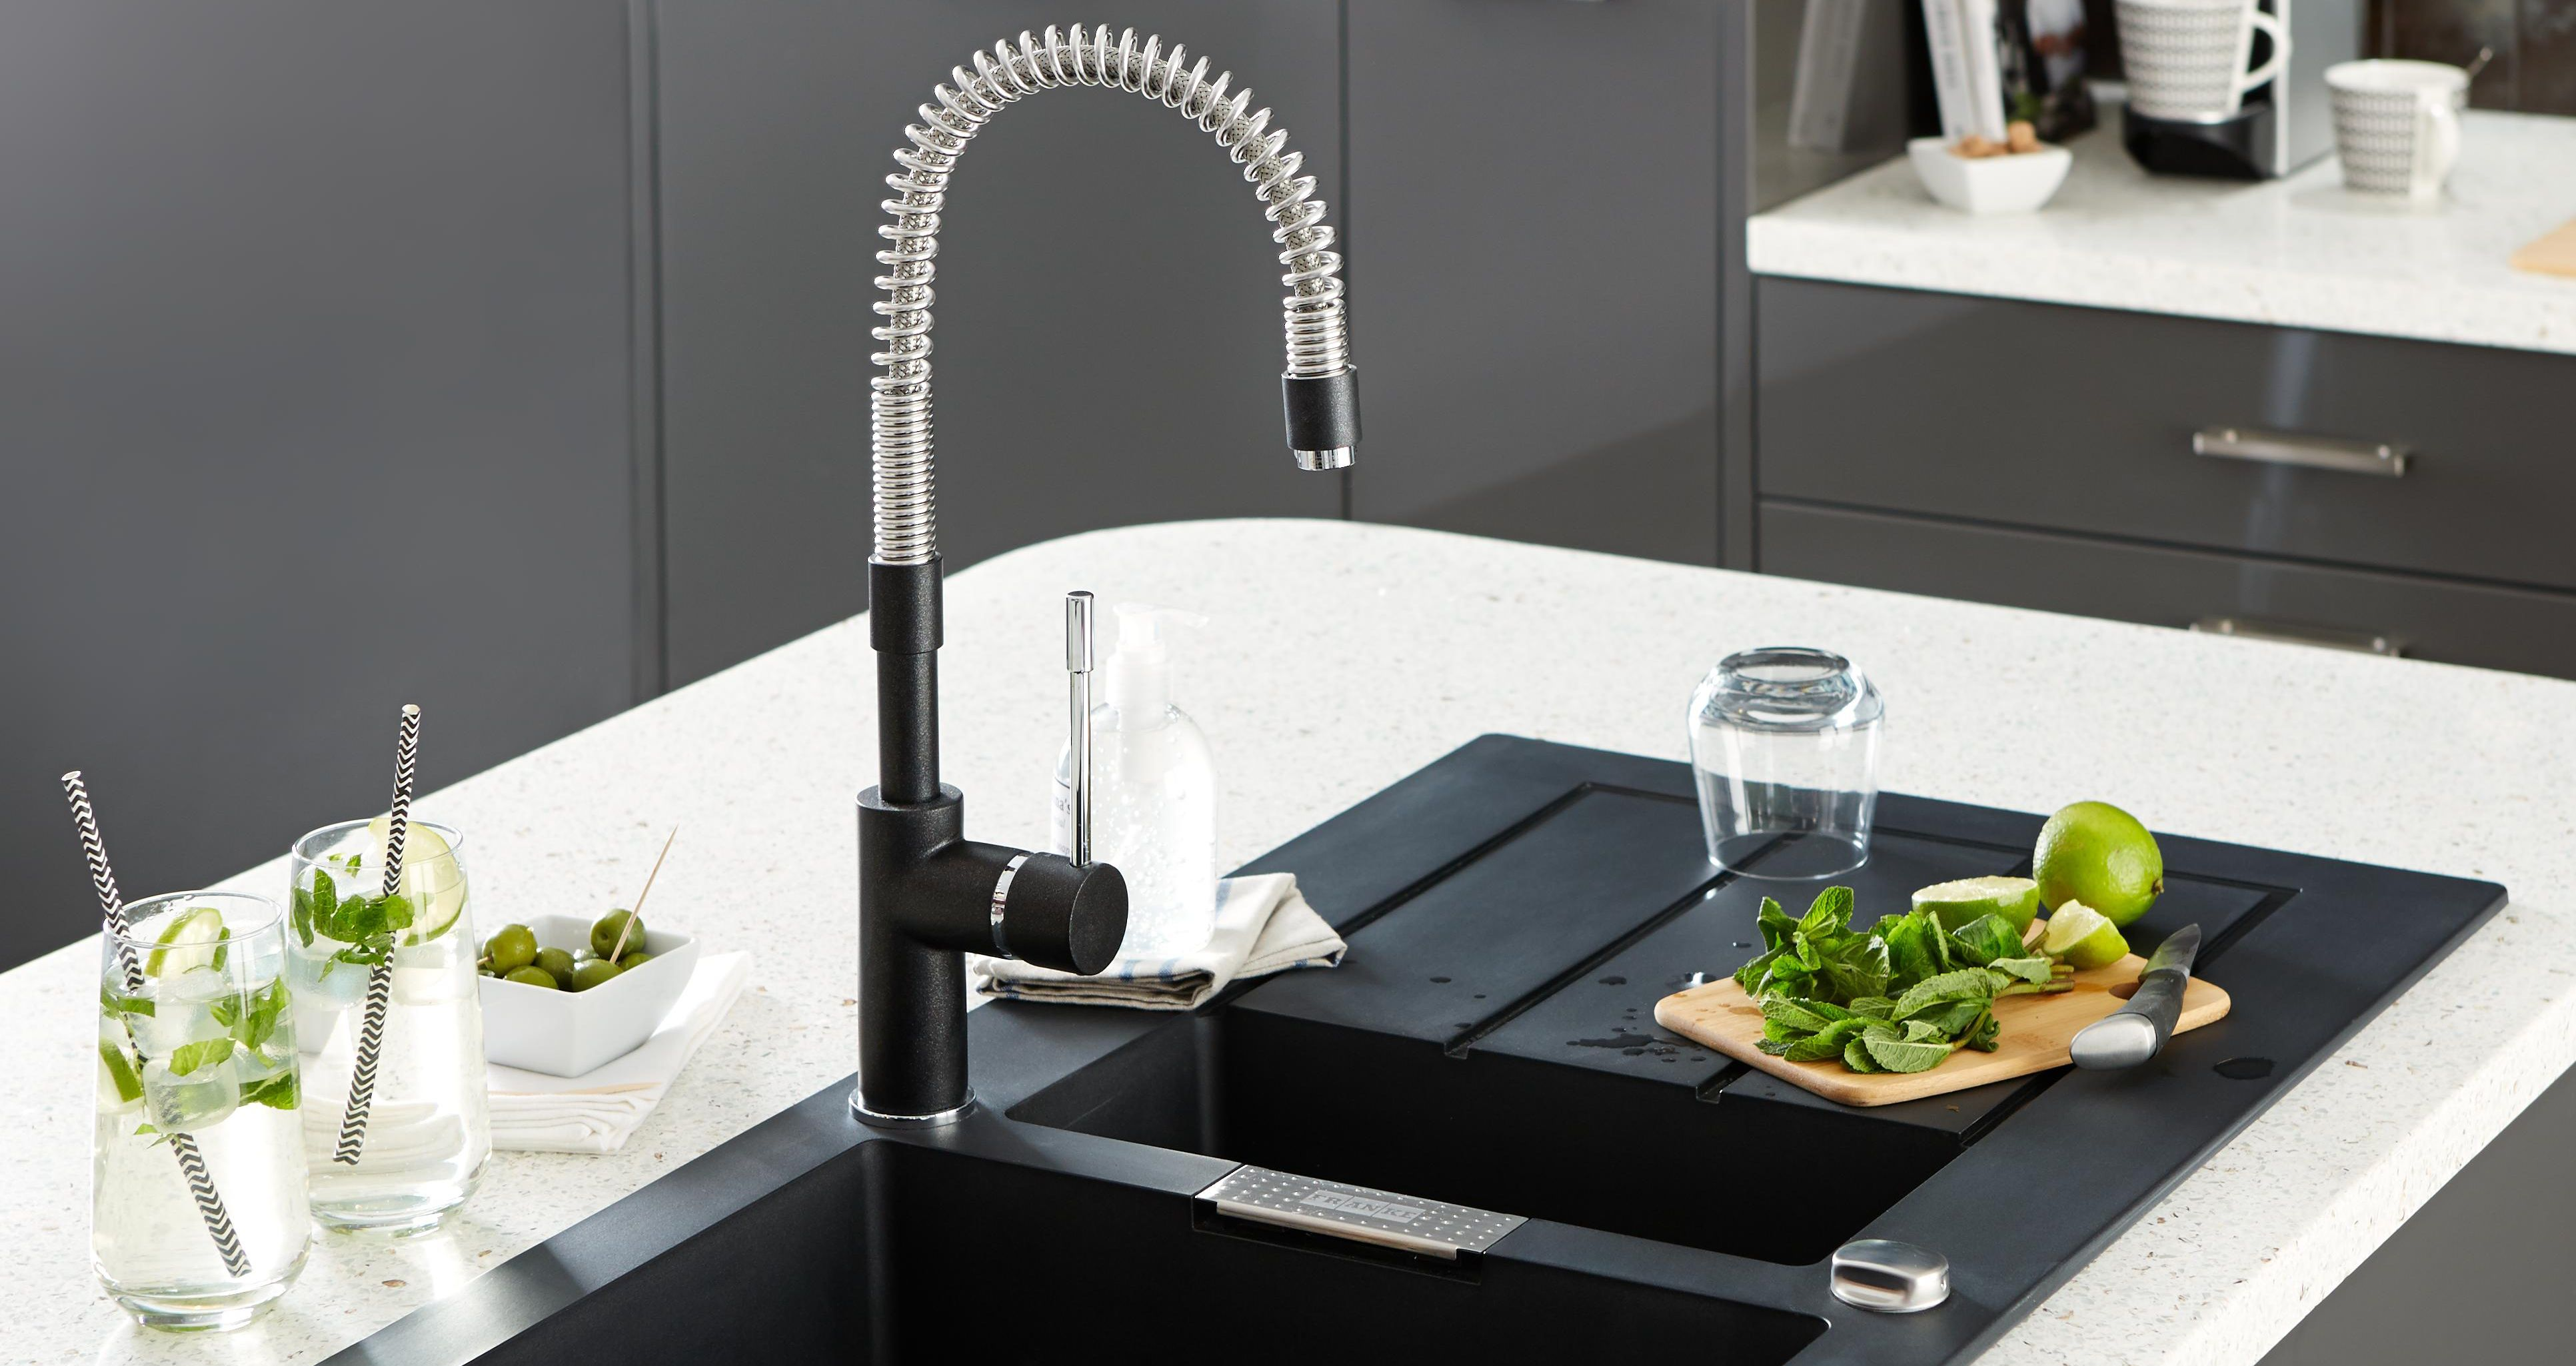 buyers guide to kitchen taps help ideas diy at bq - Kitchen Sink Tap